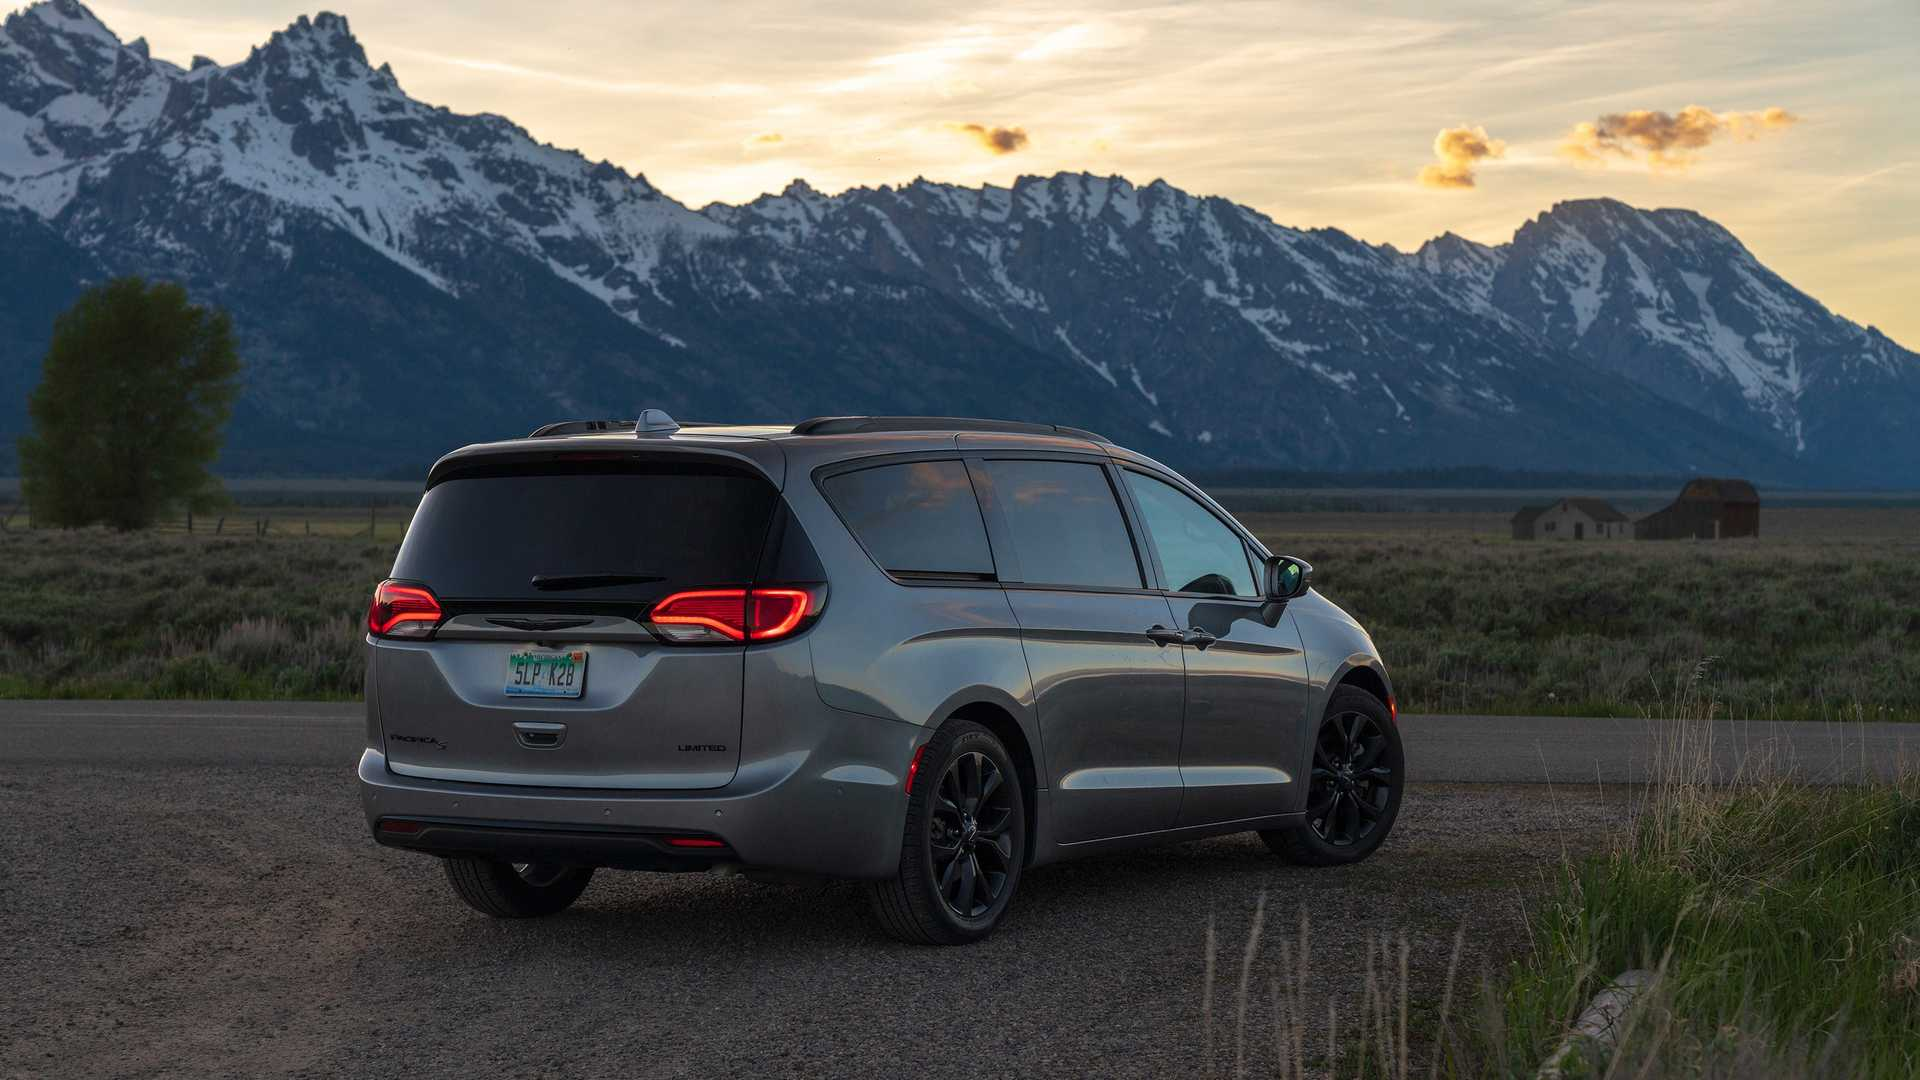 2017 - [Chrysler] Pacifica - Page 4 2020-chrysler-pacifica-red-s-edition